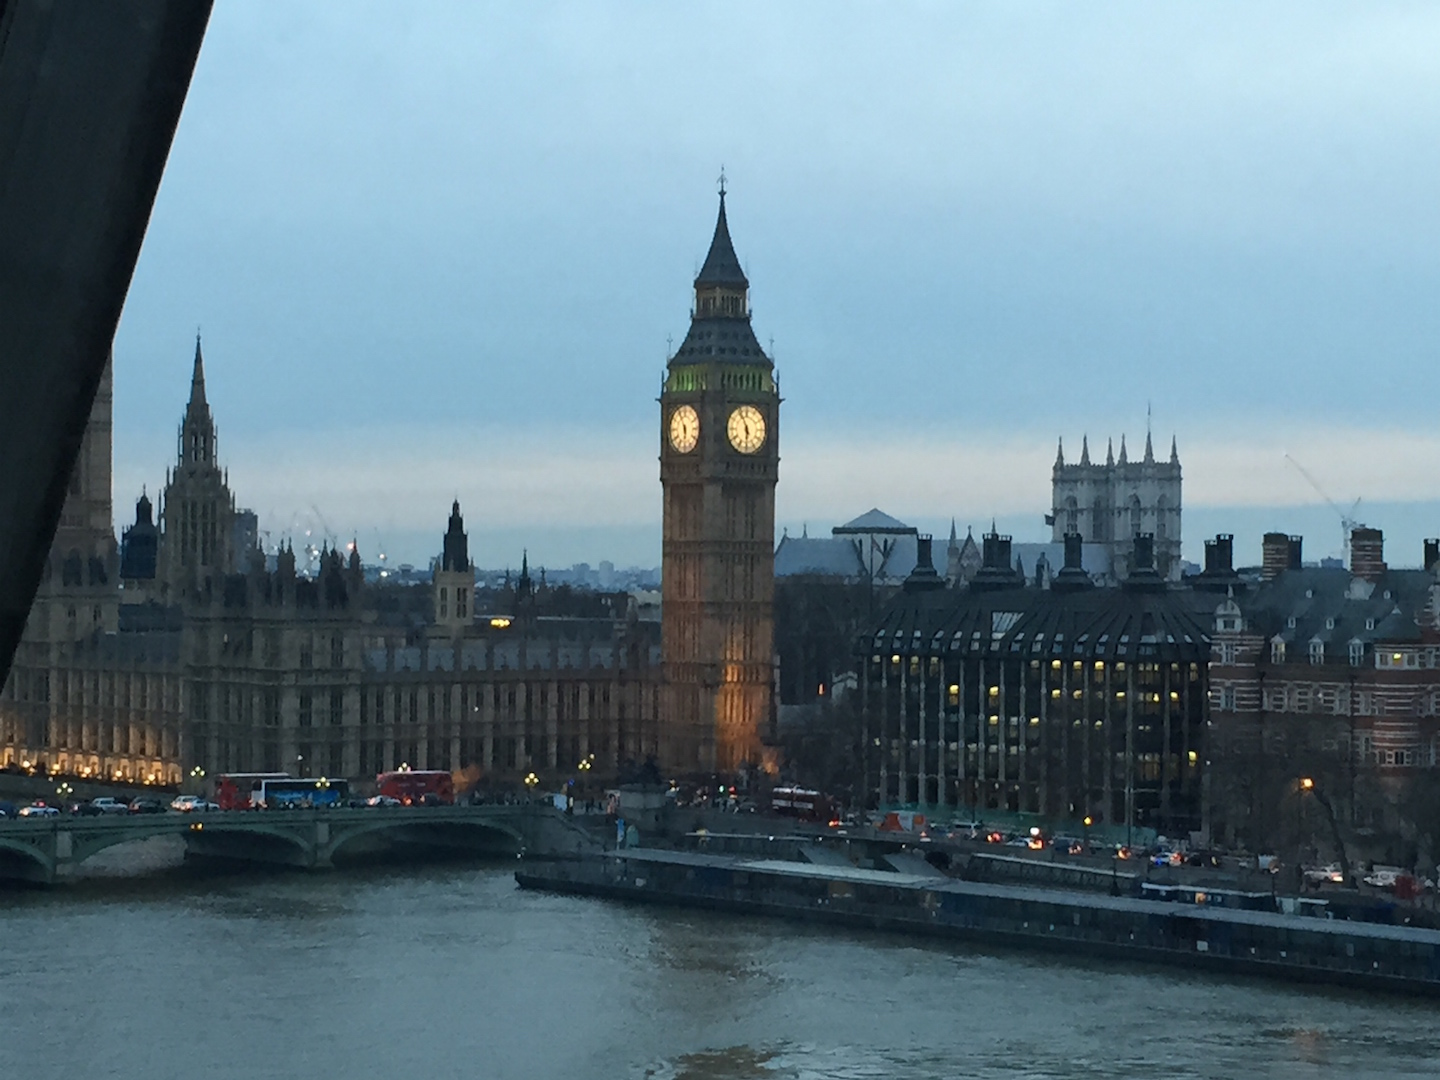 Caught a glimpse of Big Ben